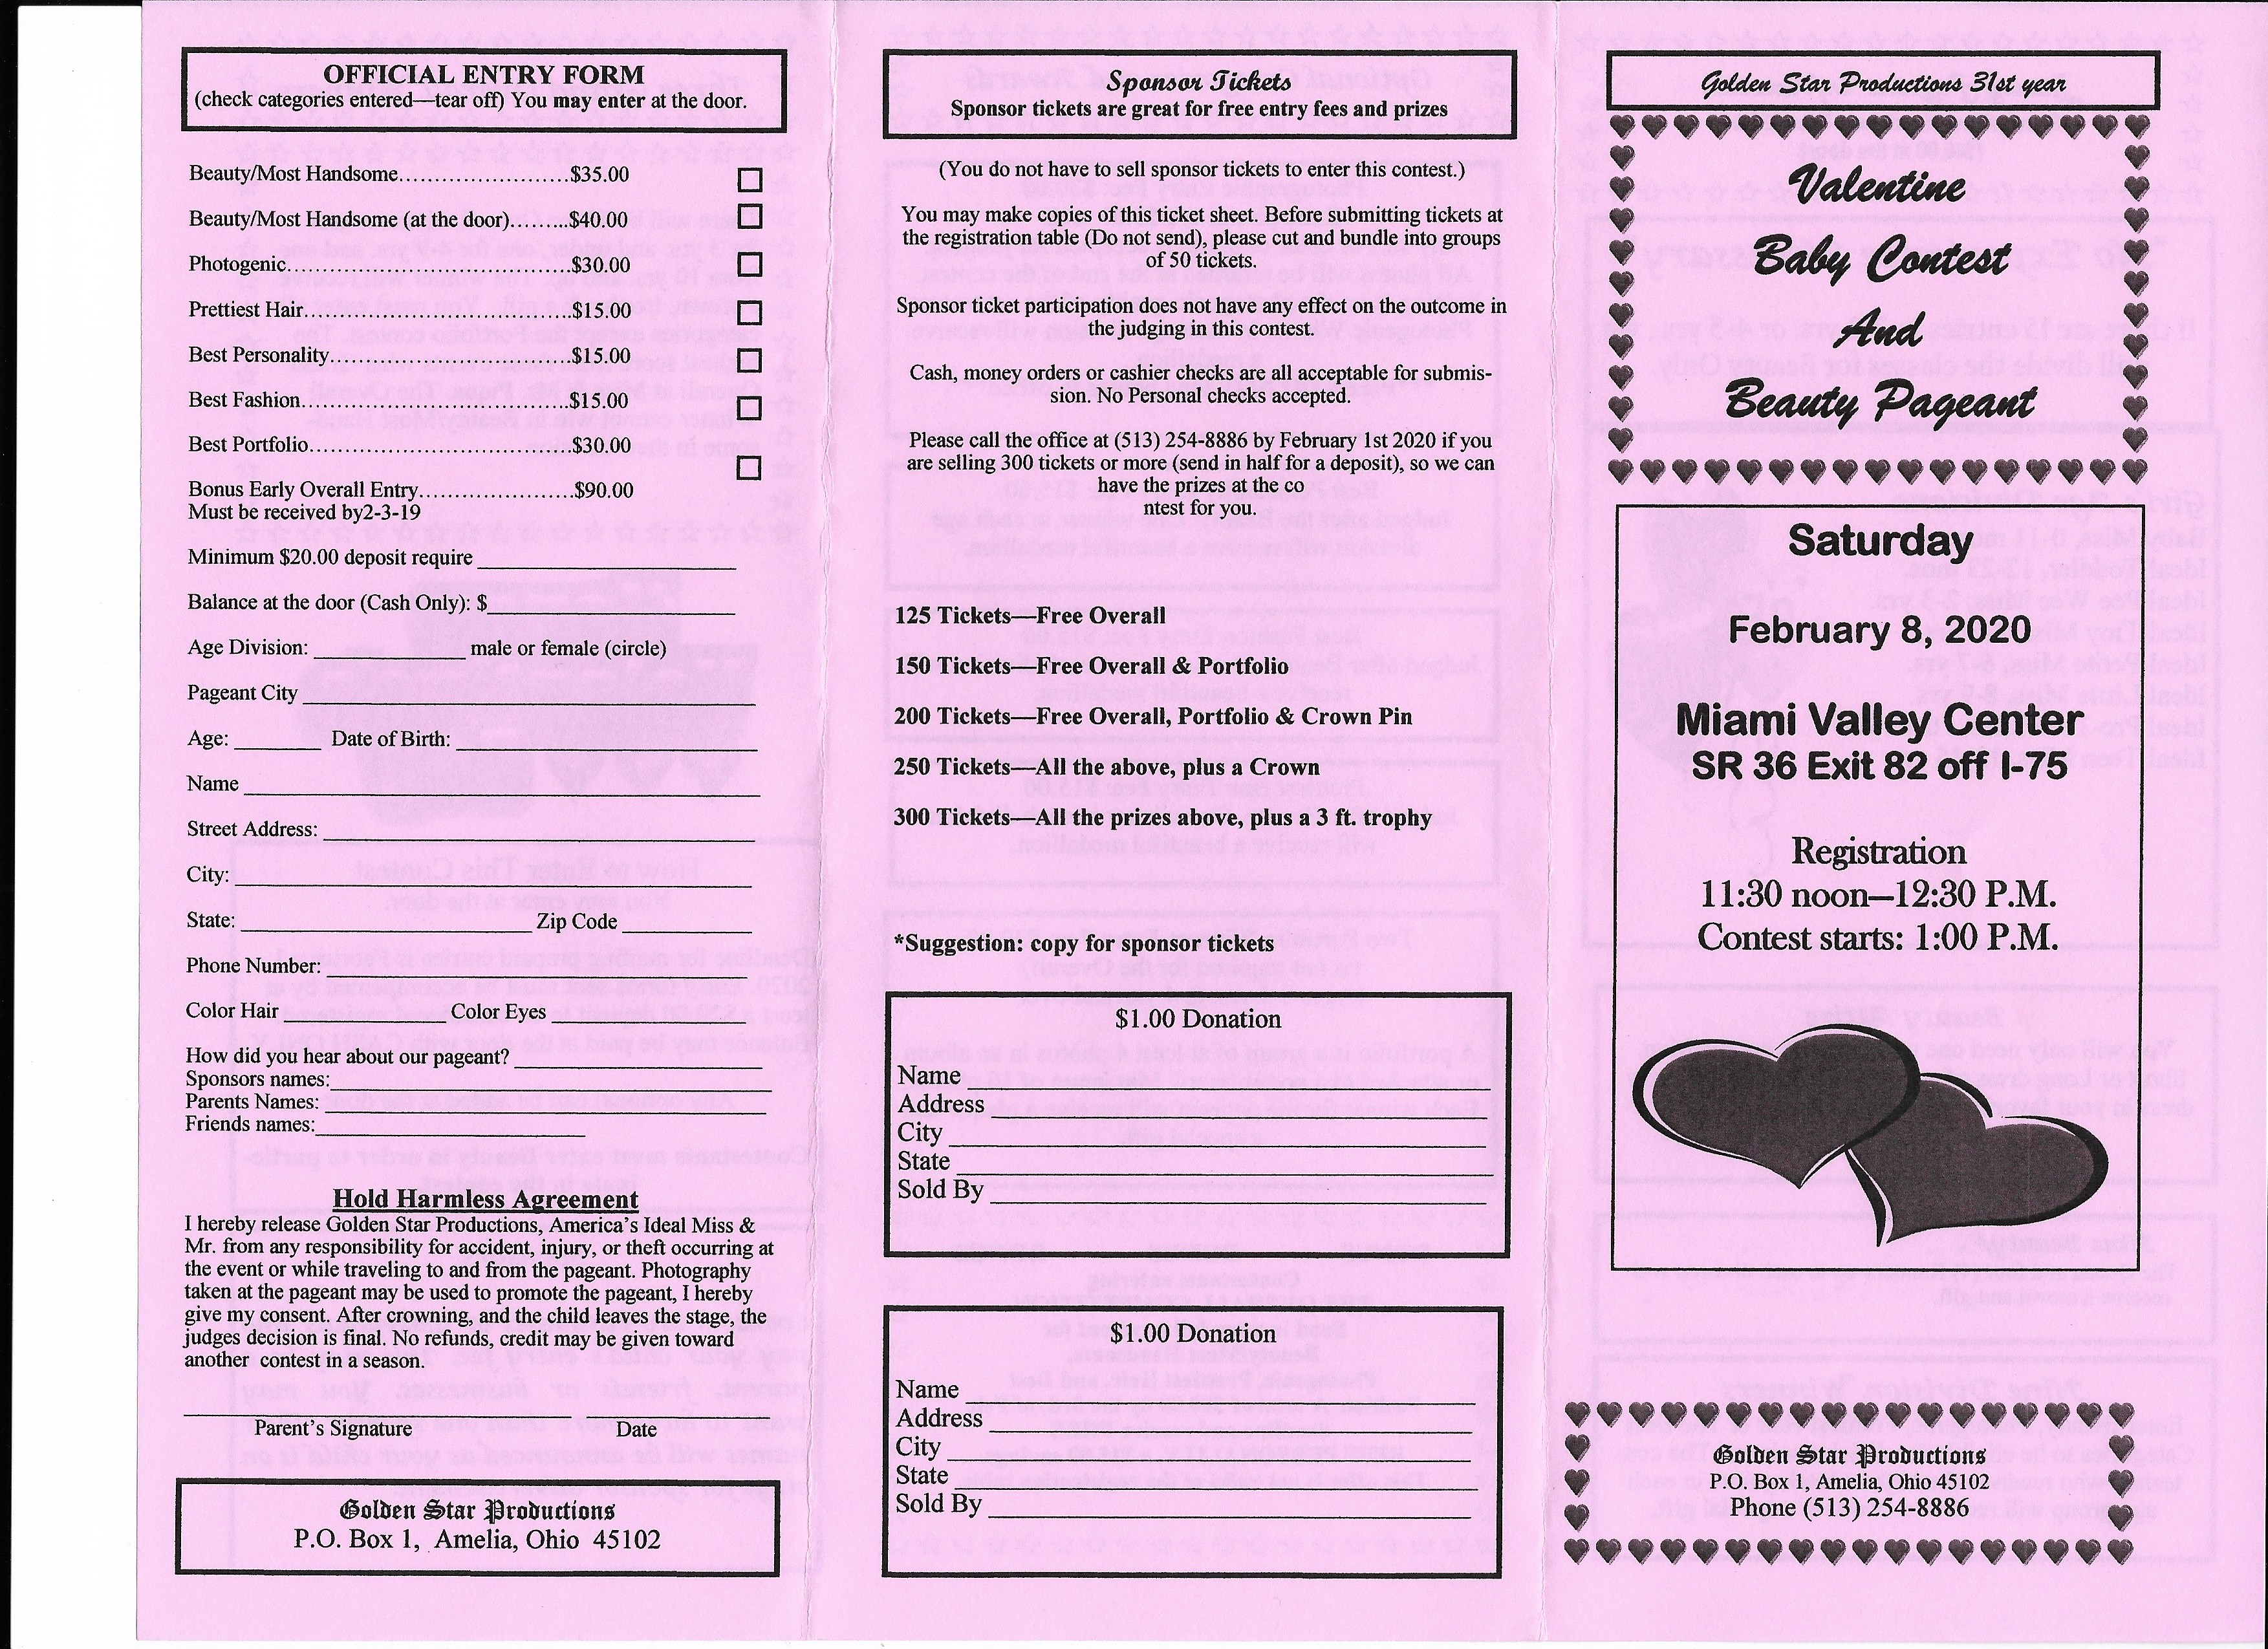 Valentine Baby Contest and Pageant registration form